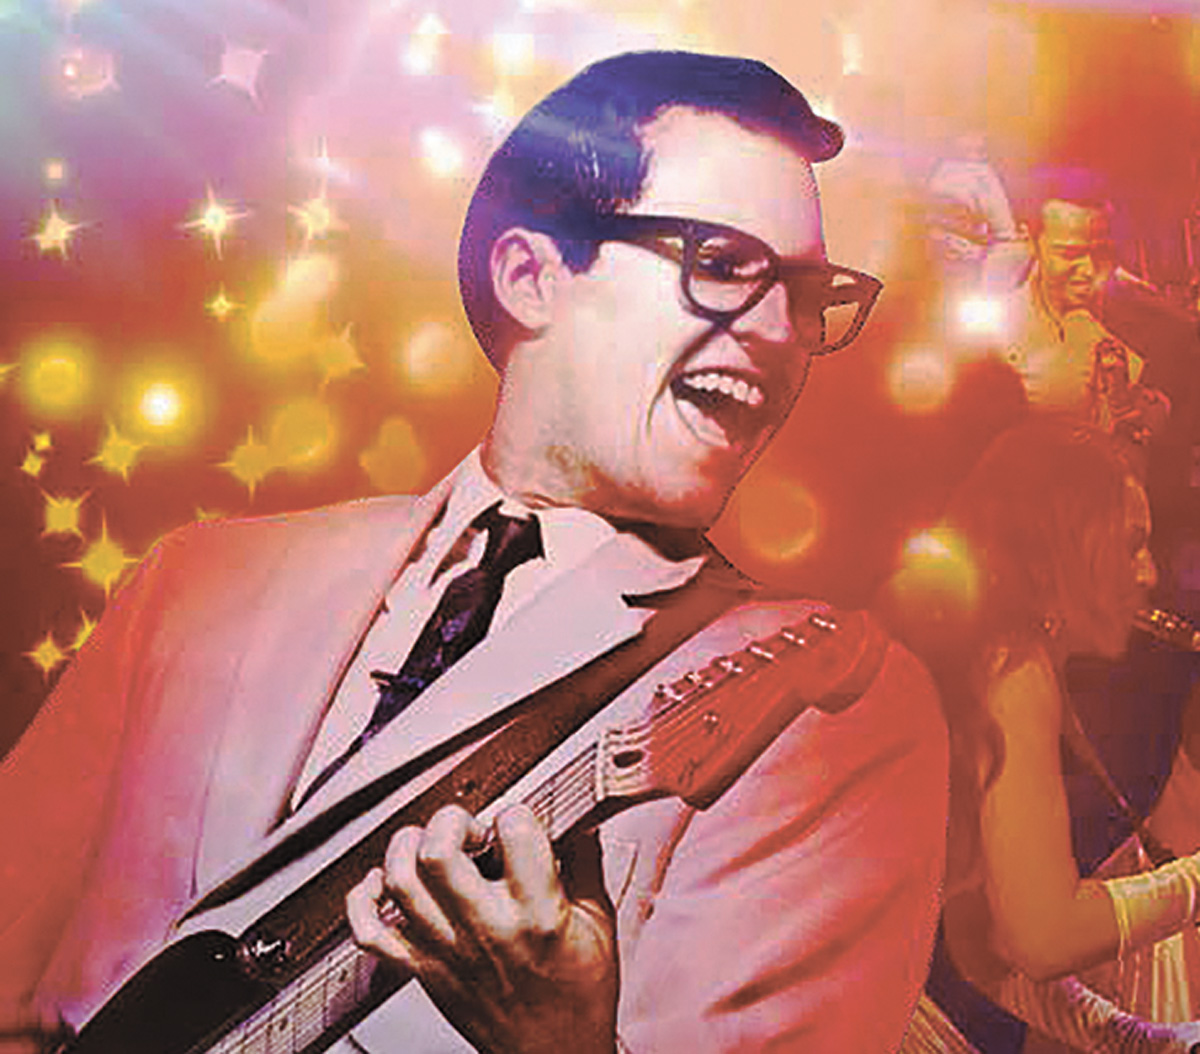 Buddy Holly is a toe tapping musical at the Hippodrome